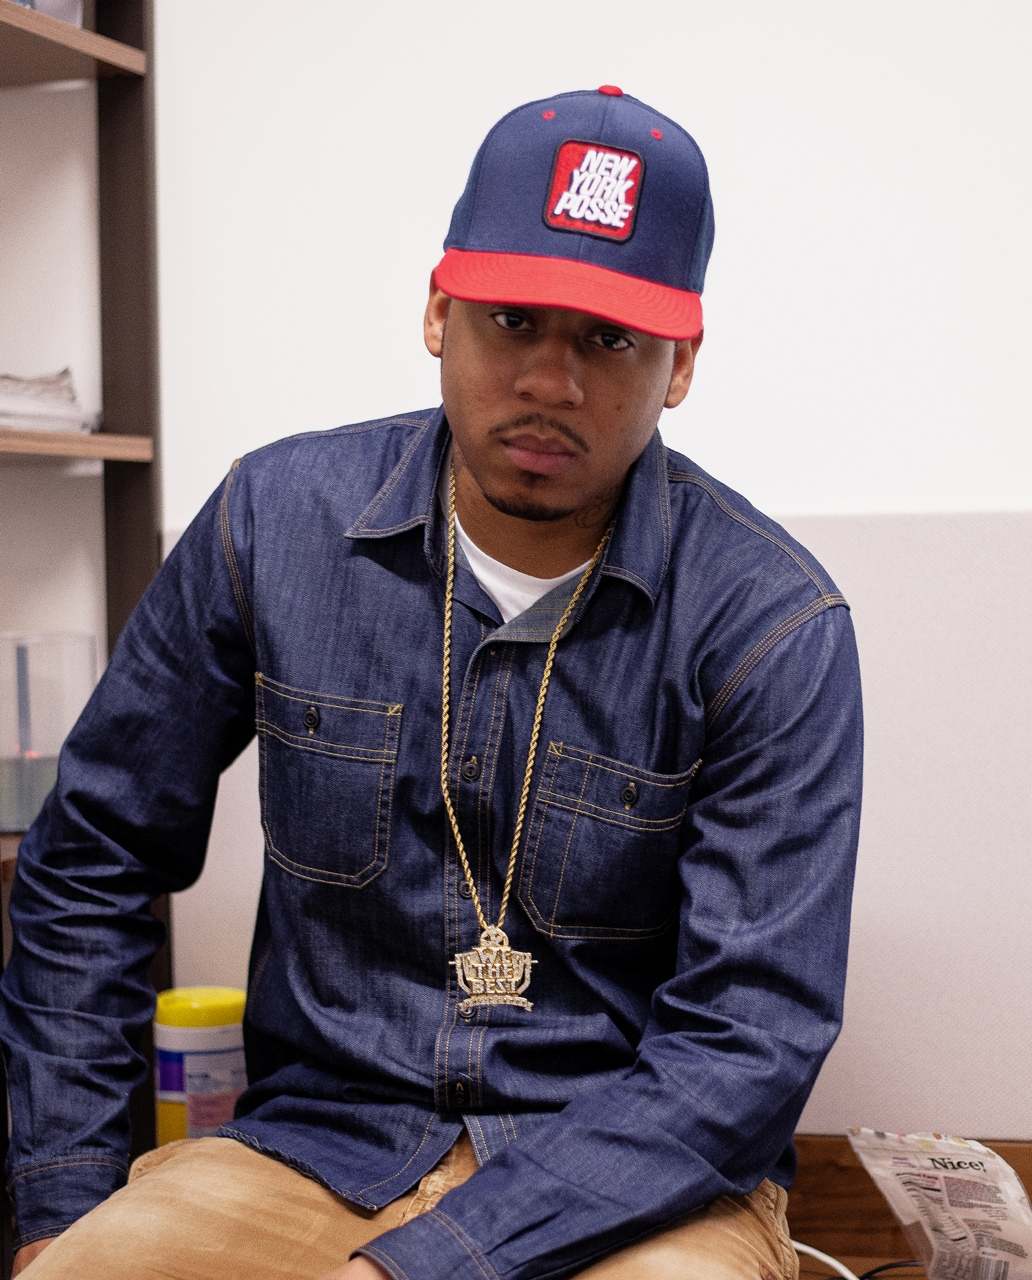 Vado wearing our New York Posse SnapBack